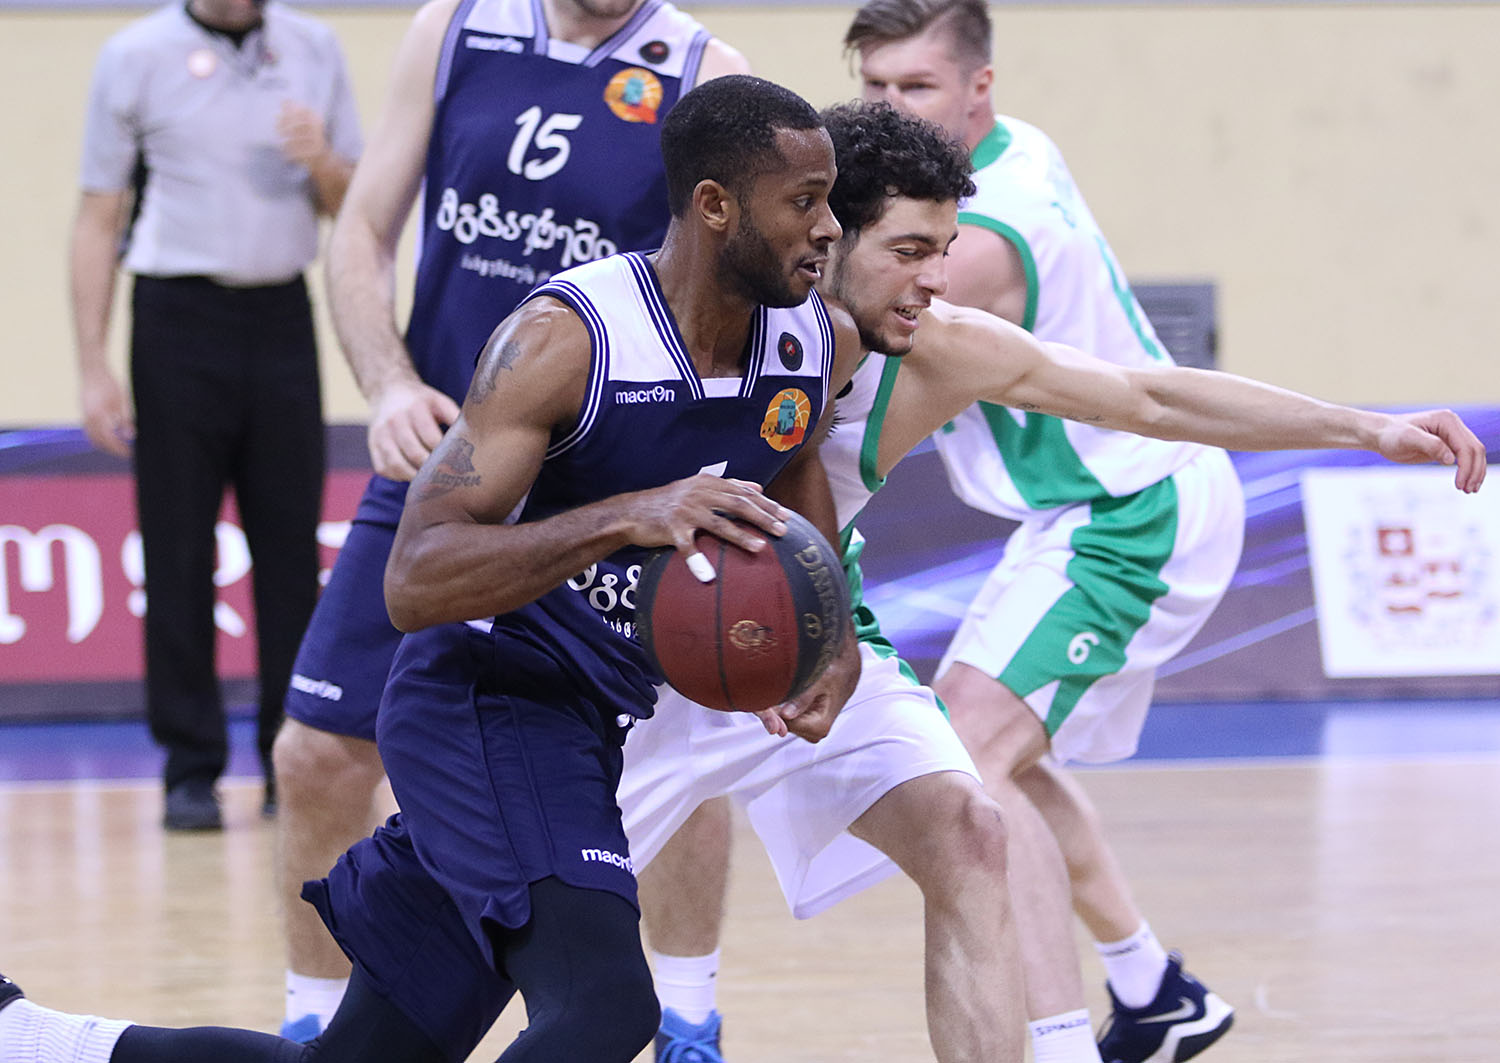 Mgzavrebi defeated Cactus in the first match of the quarter-final series